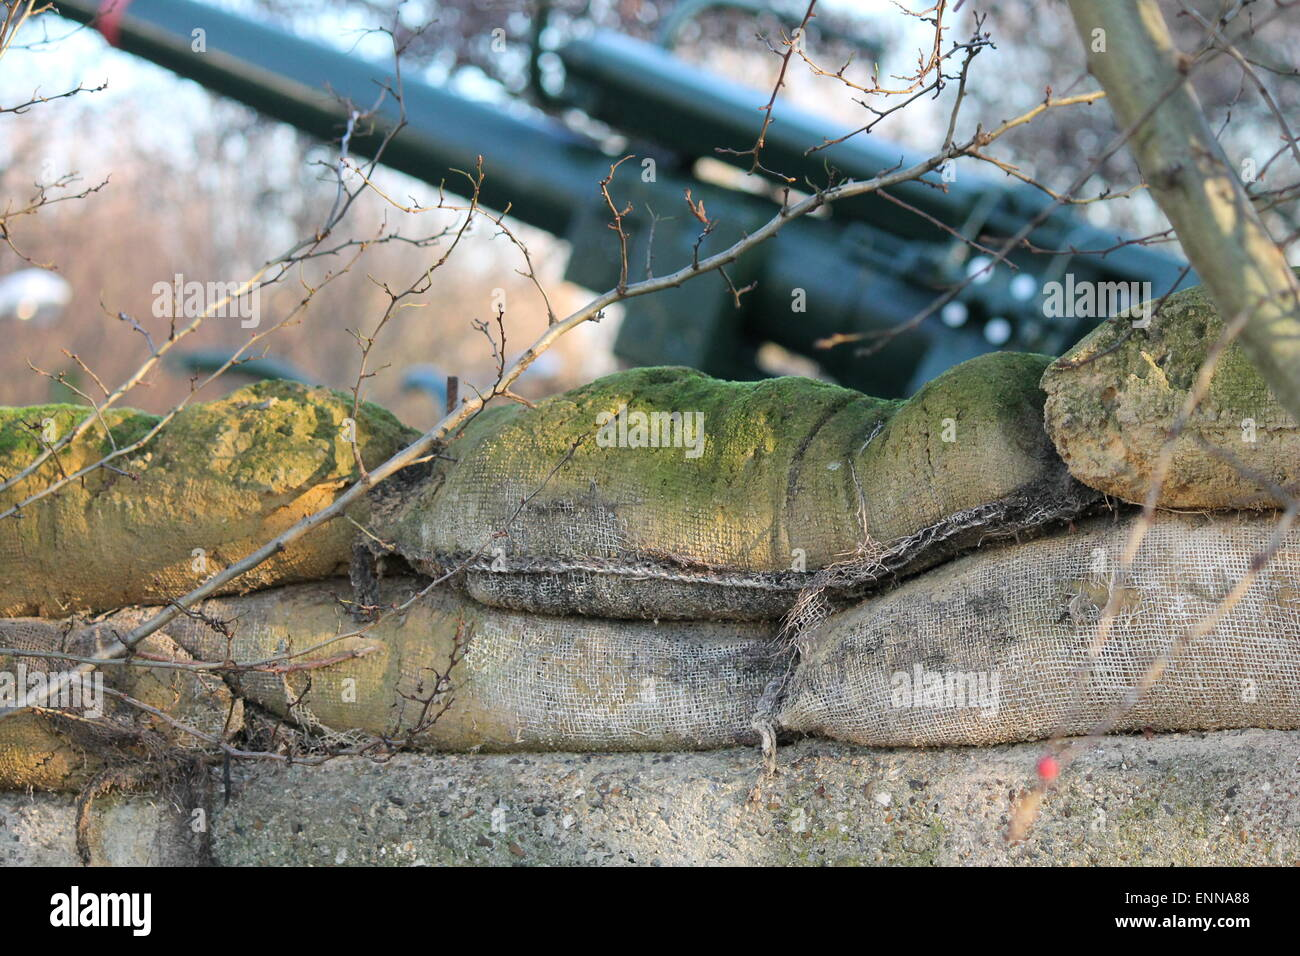 3.7' ack-ack gun from the time of Second World War- One of 4 guns at Mudshute London anti aircraft defense of - Stock Image